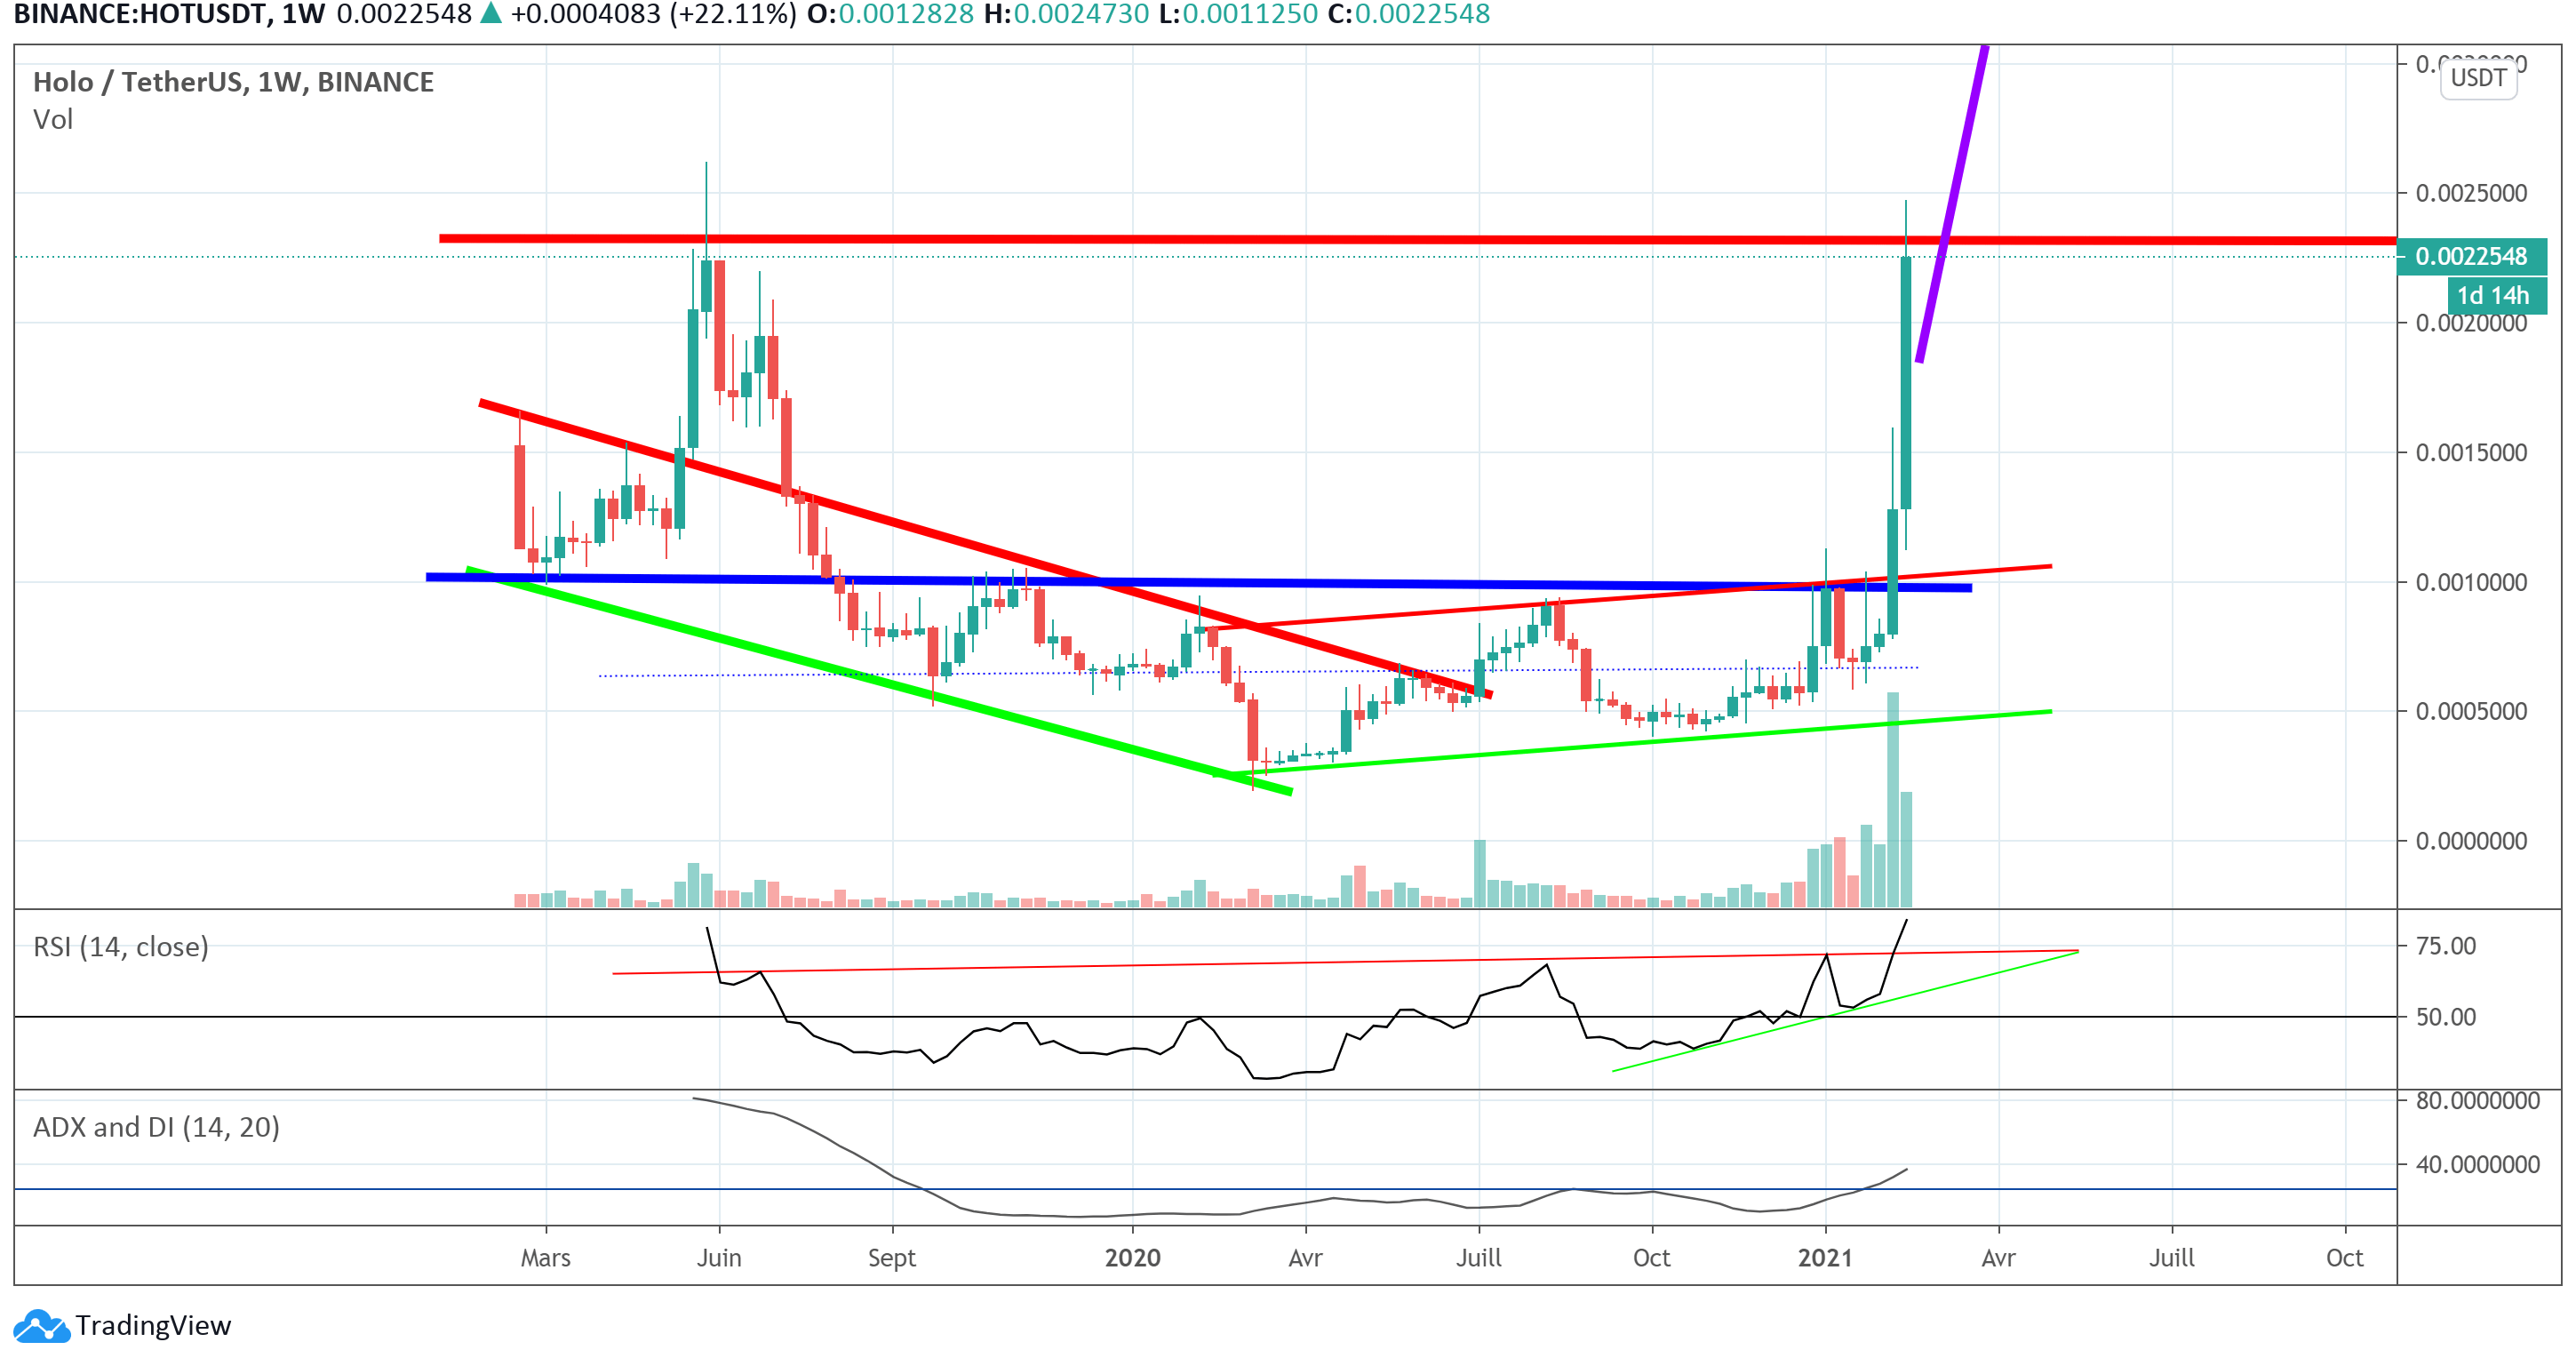 Technical analysis of HOT/USDT in 2021